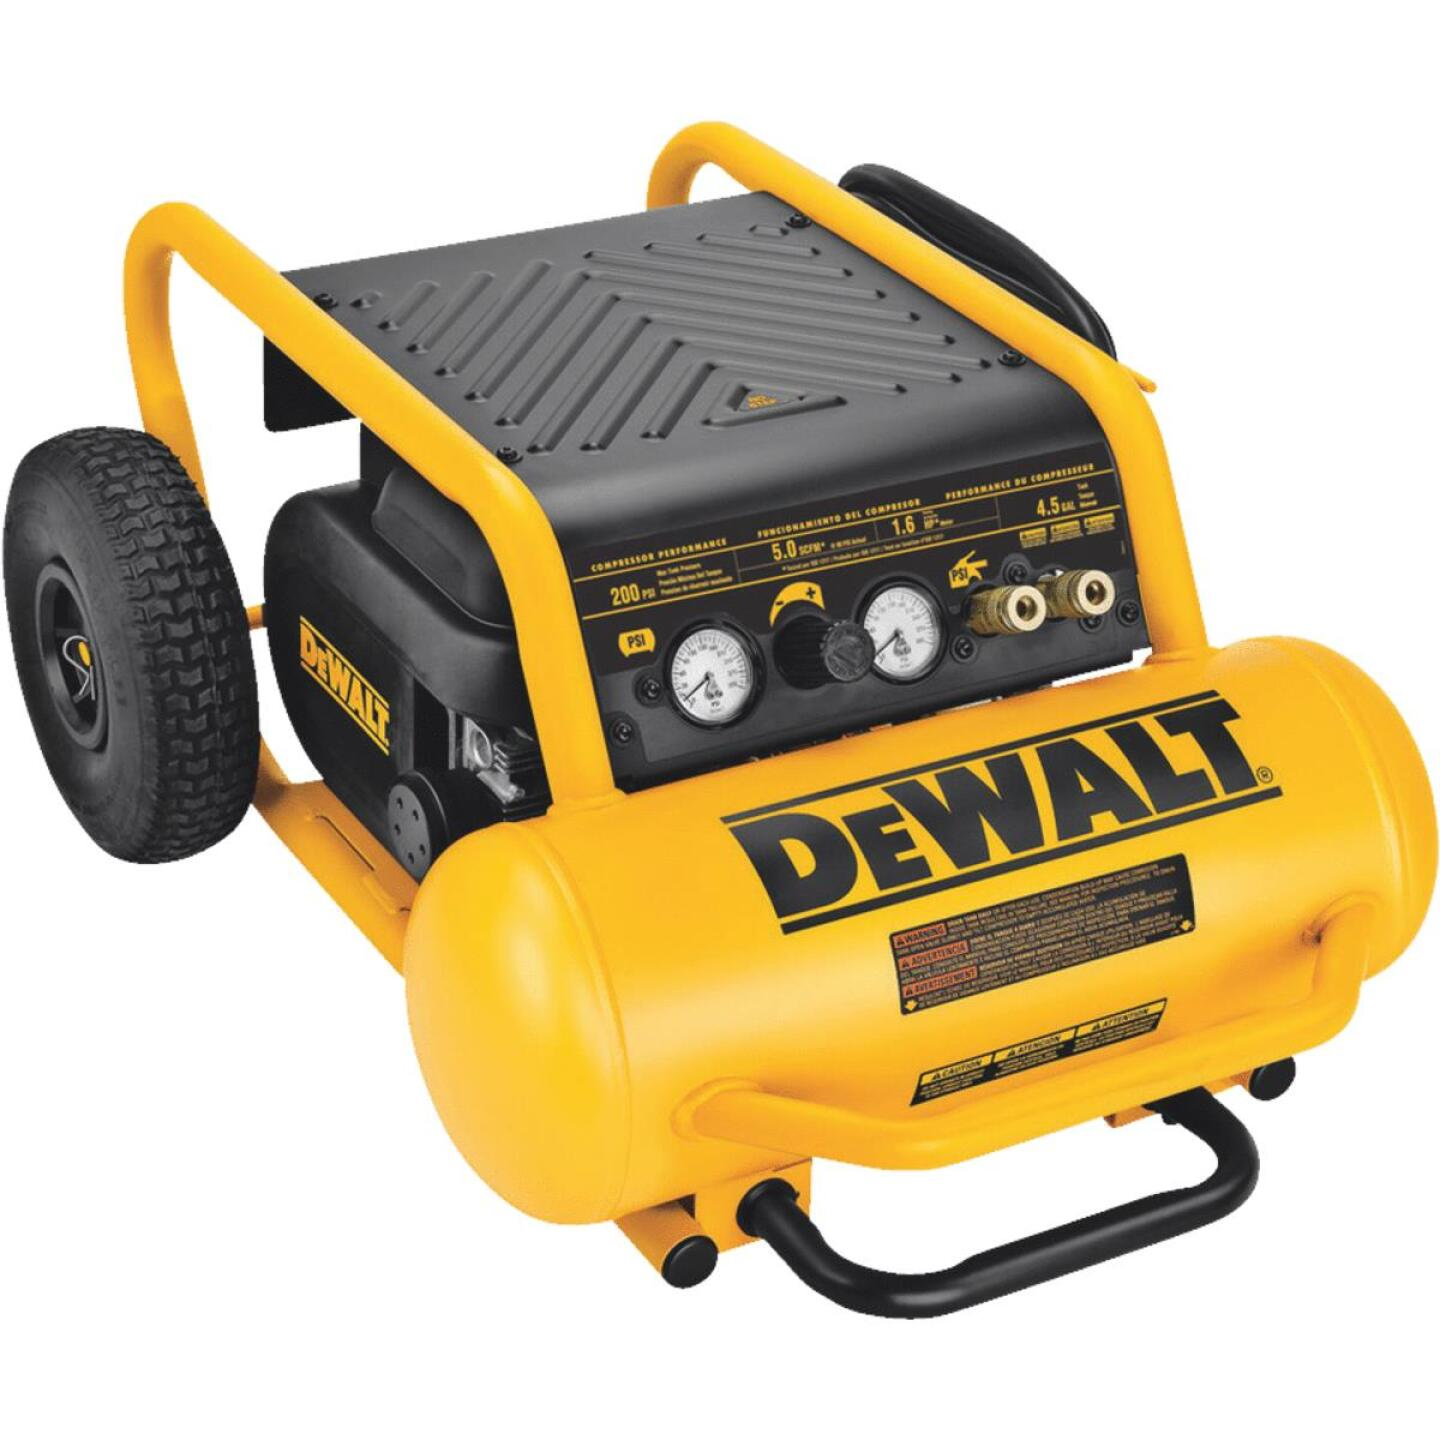 DeWalt 4-1/2 Gal. Portable 200 psi Air Compressor Image 1